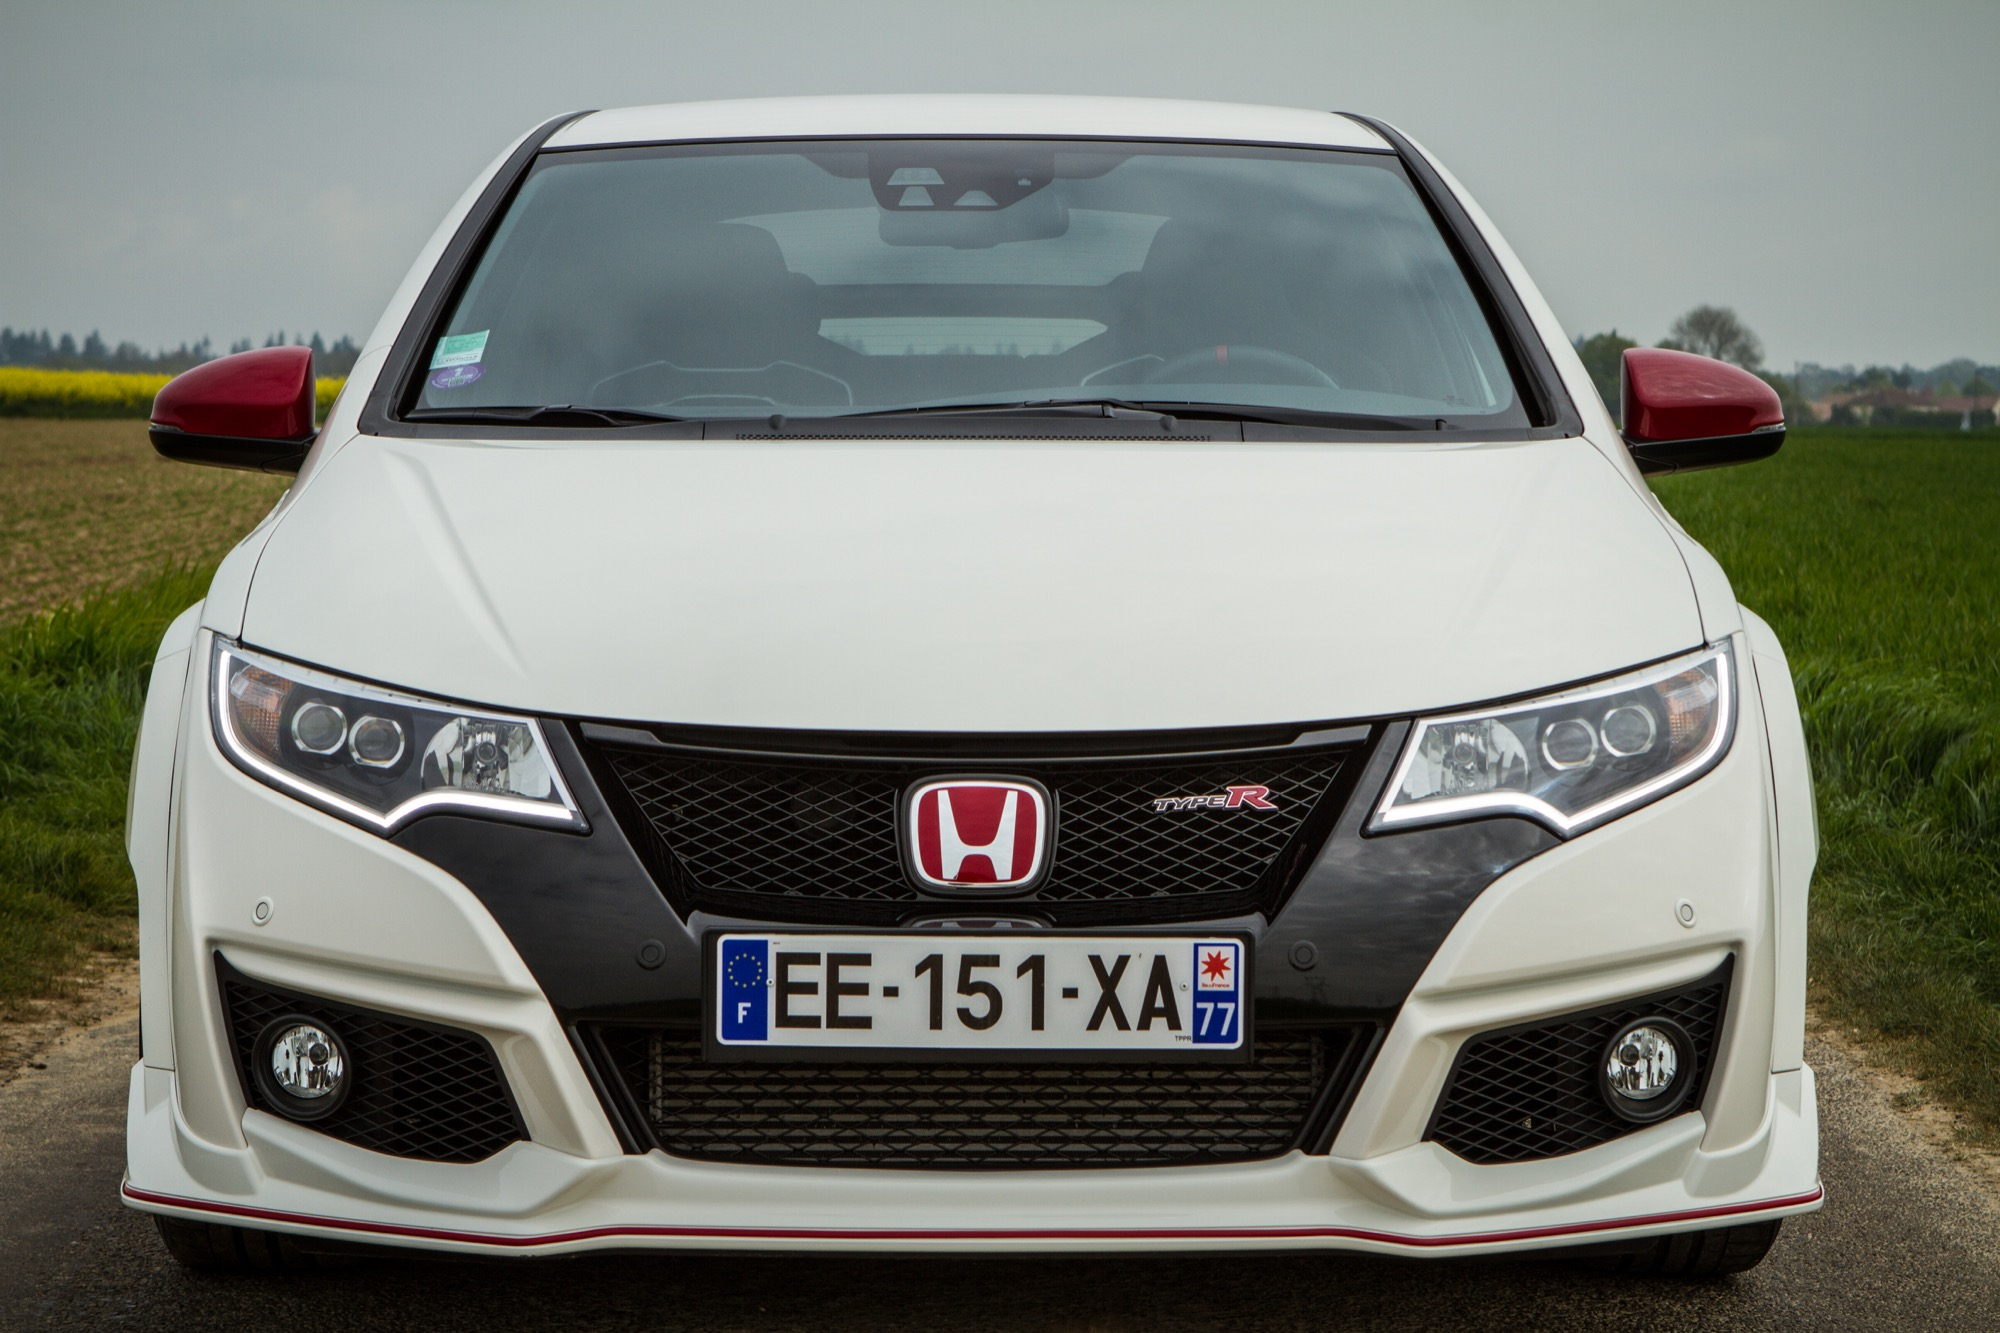 essai honda civic type r 2016 exterieur 55 le blog de viinz. Black Bedroom Furniture Sets. Home Design Ideas